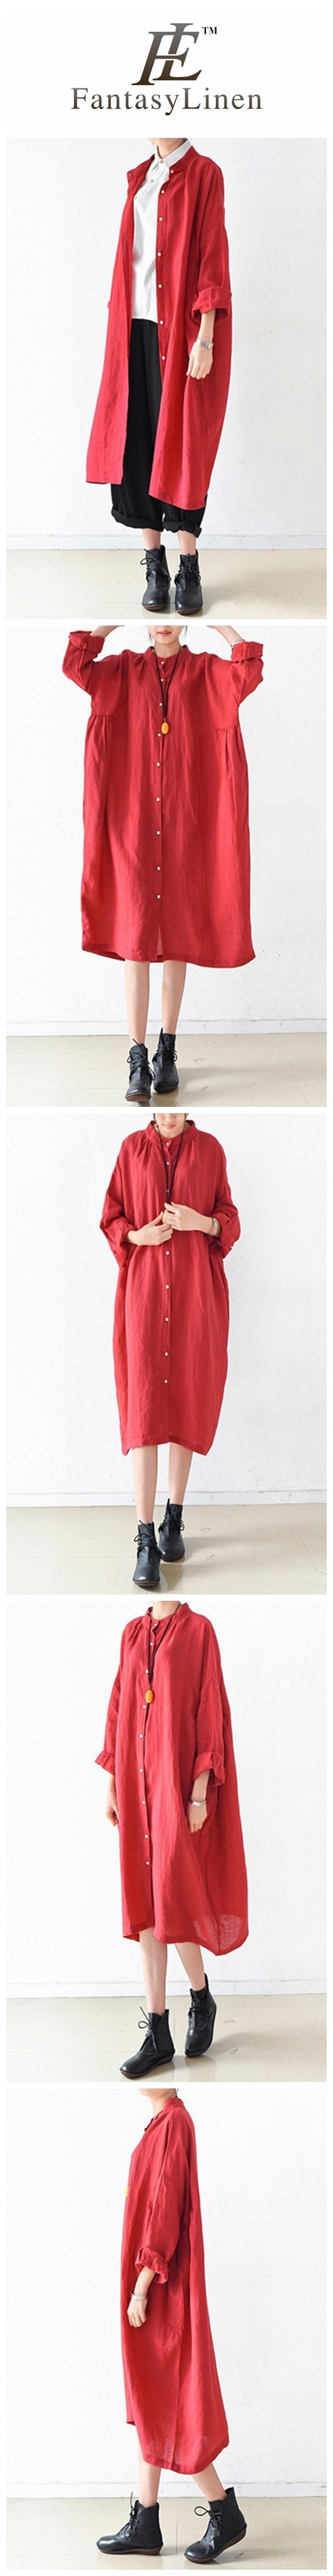 Red Women Loose Fitting Gown Single Breasted Large Size Maxi Dress Long Shirt Dress Q0805  Q0805Red